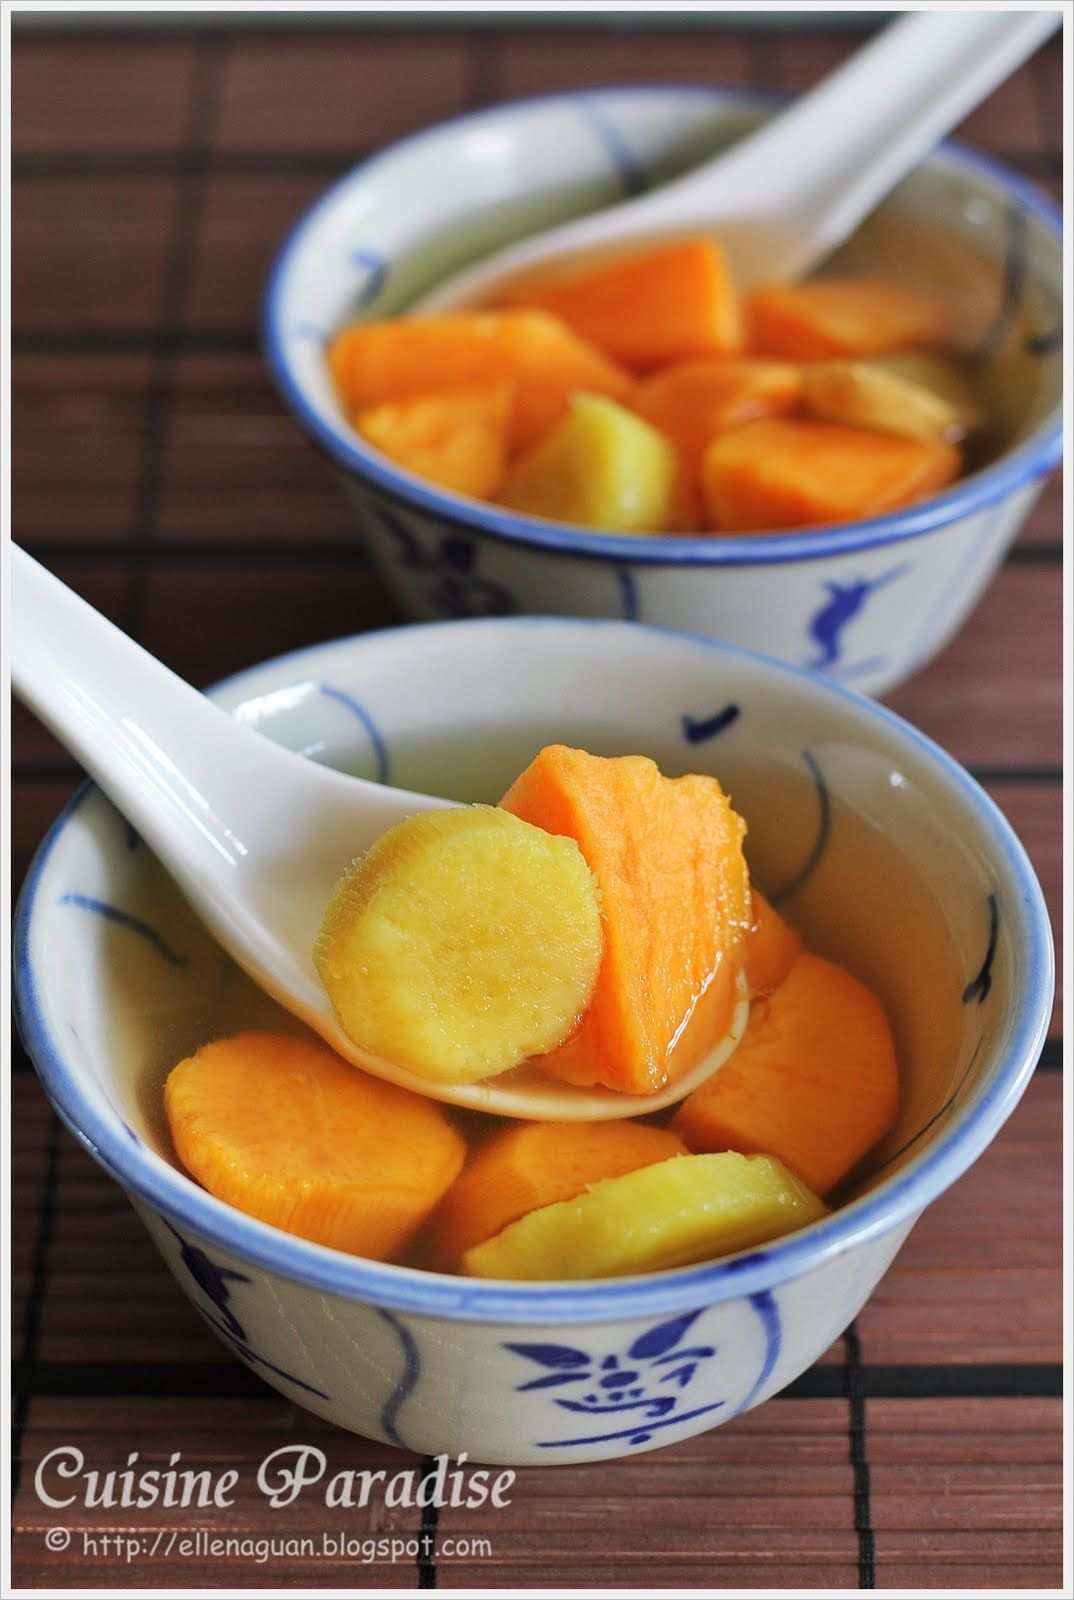 Cuisine paradise singapore food blog recipes food reviews cuisine paradise singapore food blog recipes food reviews travel dessert sweet potato soup forumfinder Choice Image